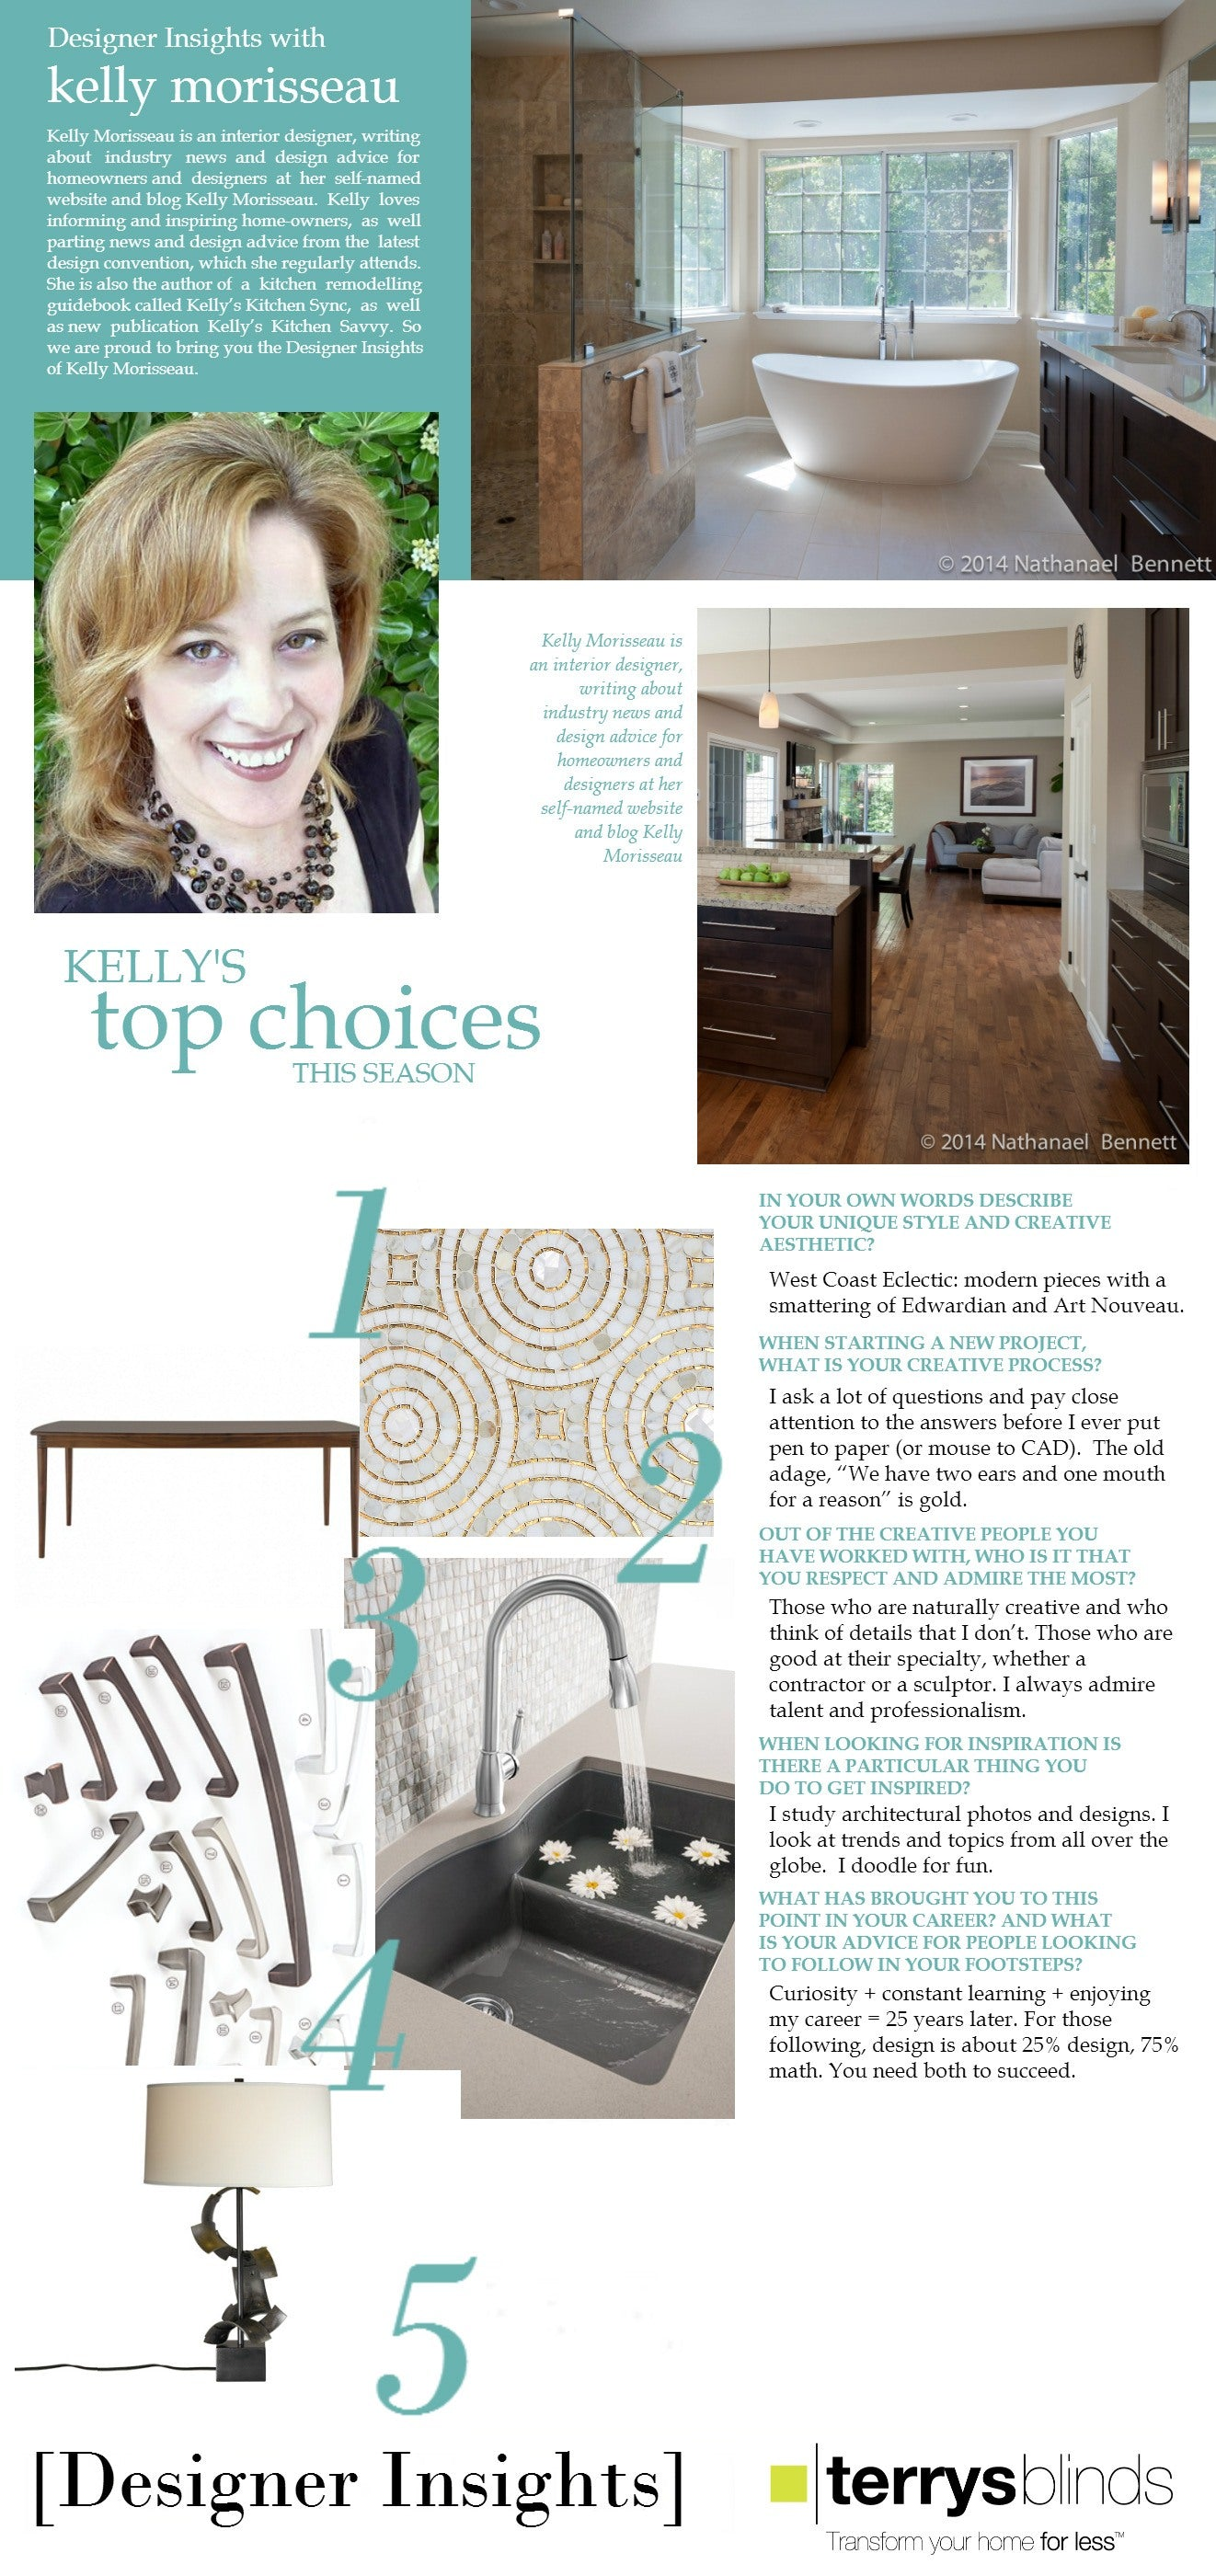 Designer Insights - Kelly Morisseau